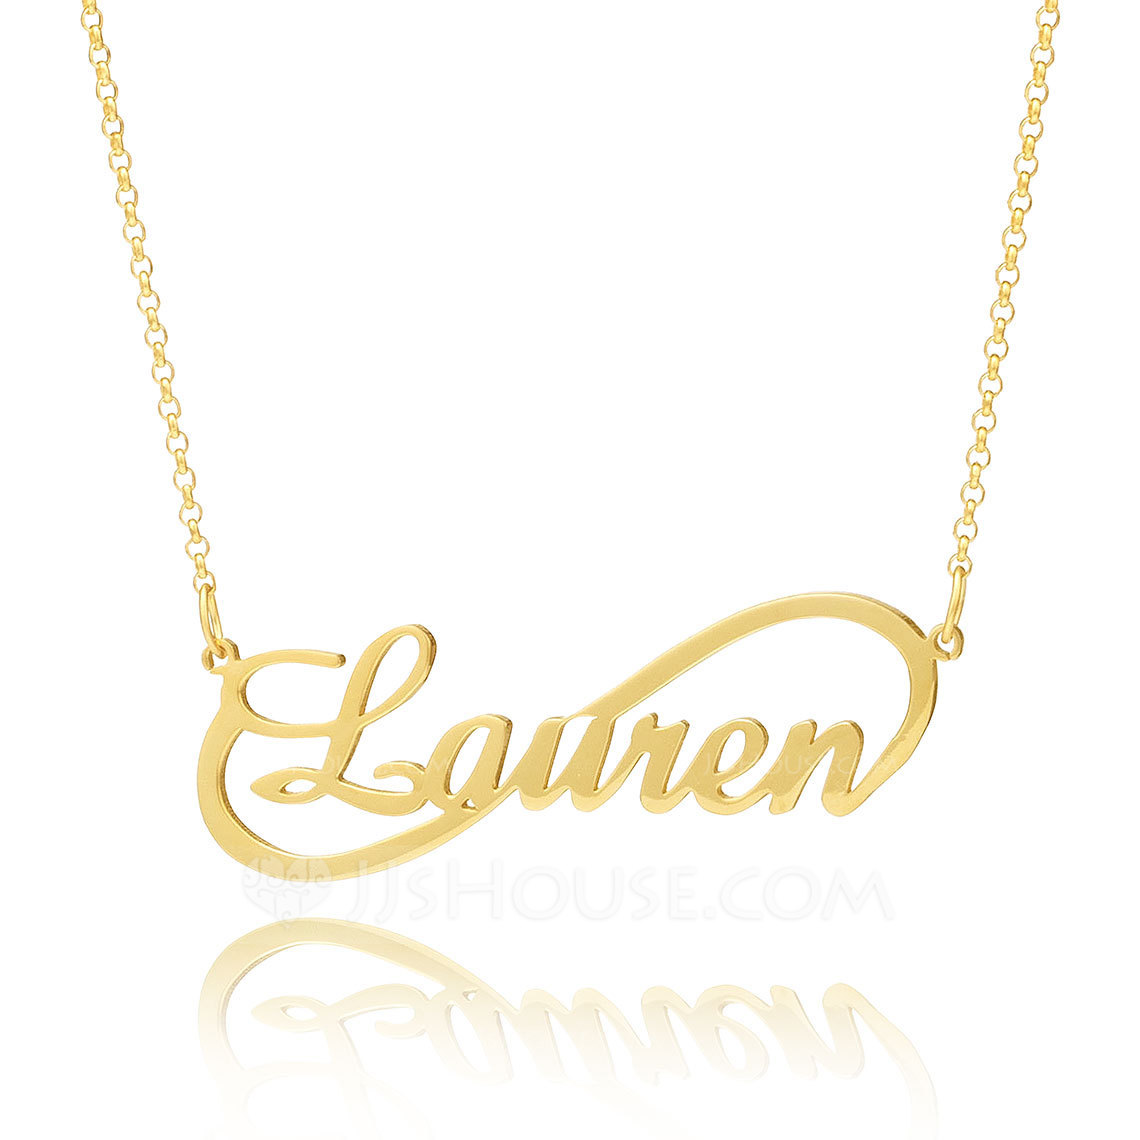 Custom 18k Gold Plated Silver Infinity Name Necklace Infinity Name Necklace - Birthday Gifts Mother's Day Gifts